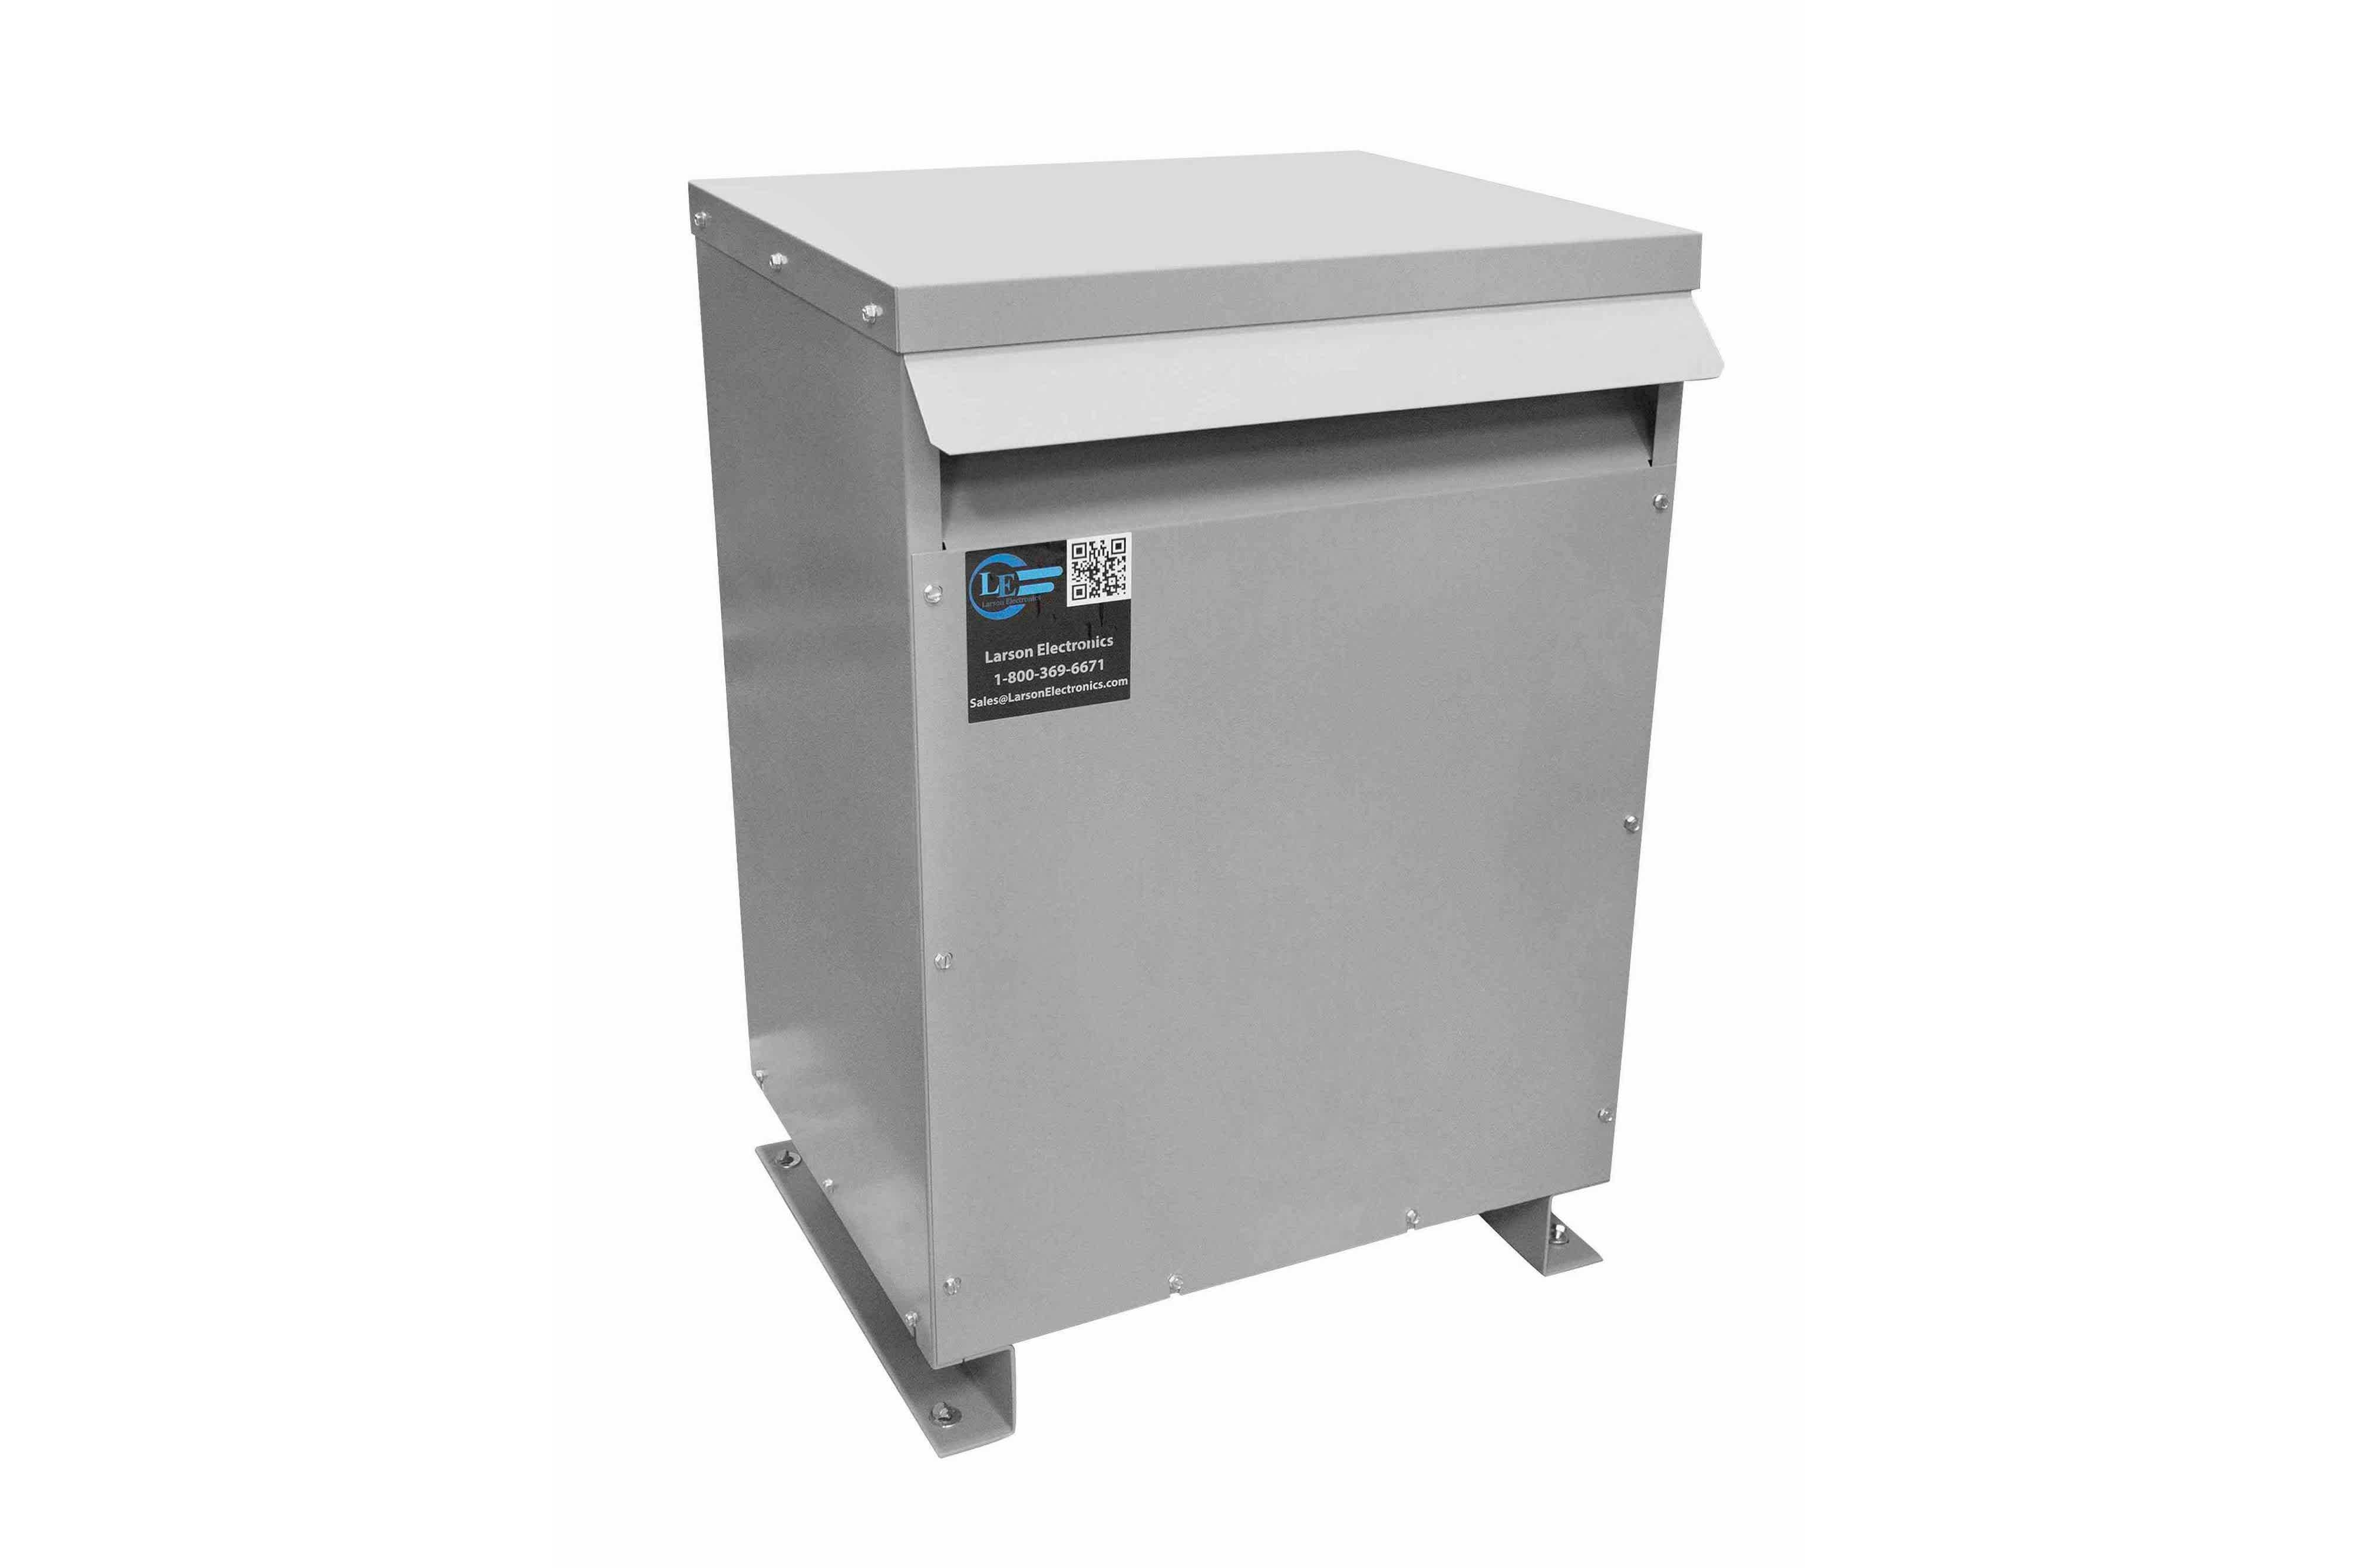 167 kVA 3PH Isolation Transformer, 240V Delta Primary, 208V Delta Secondary, N3R, Ventilated, 60 Hz